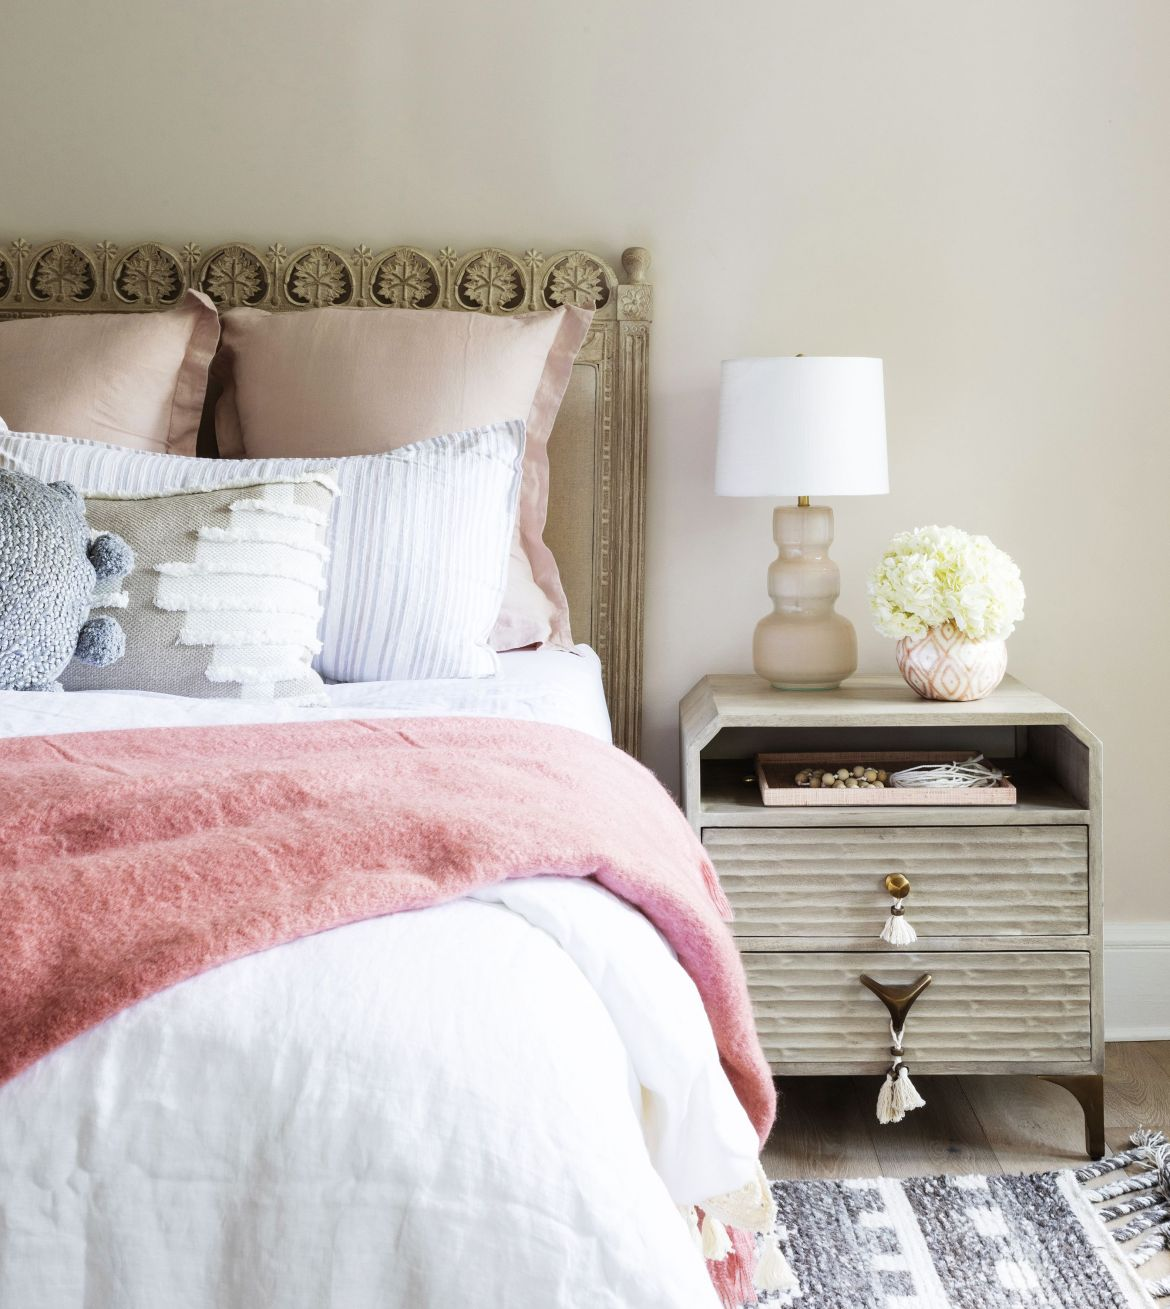 home featuring warm neutrals and soothing blue hues to accent the beautiful architecture of the vintage home interior designer karen b wolf bedroom